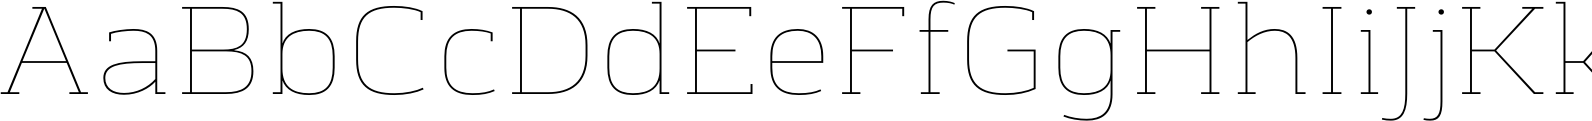 Chercher Hairline Font